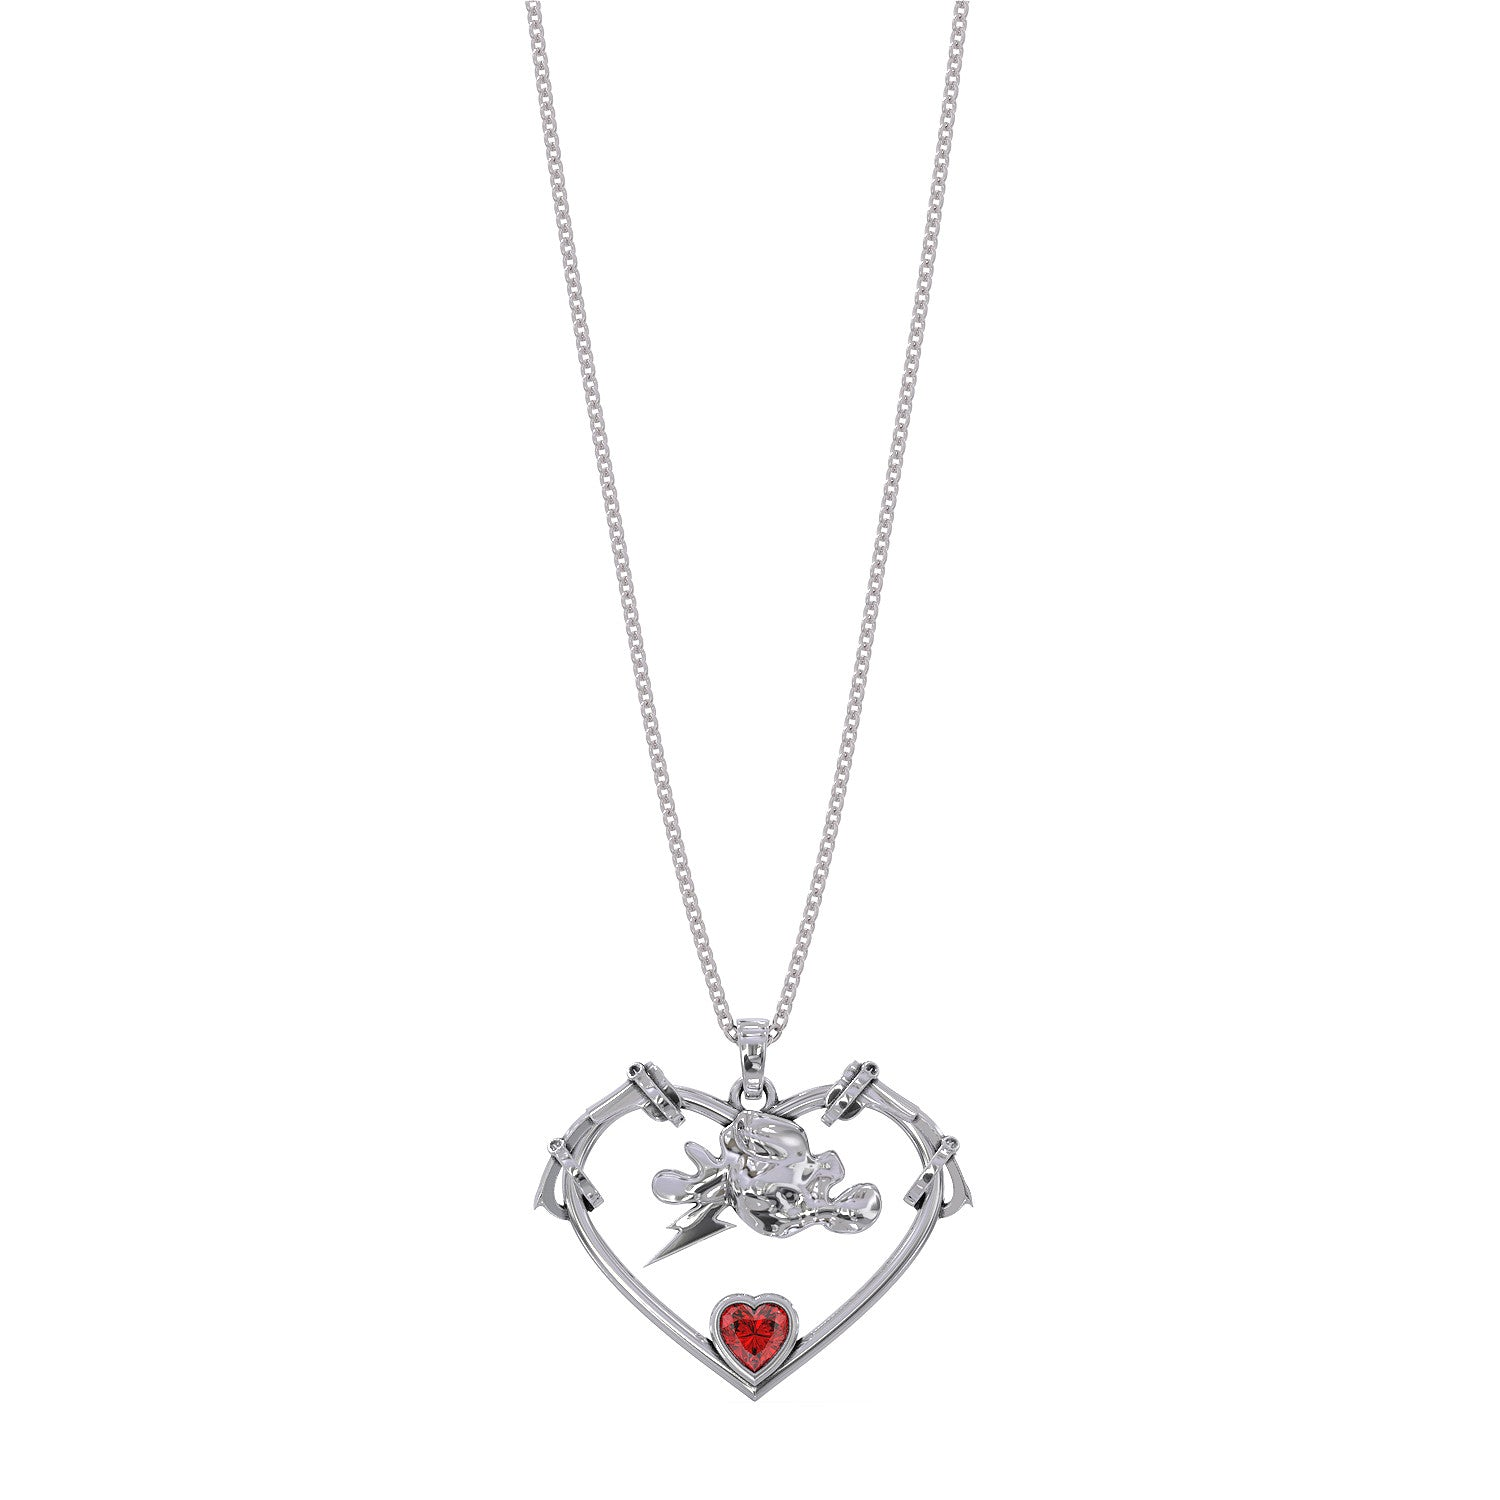 Storm Heart V2 Necklace